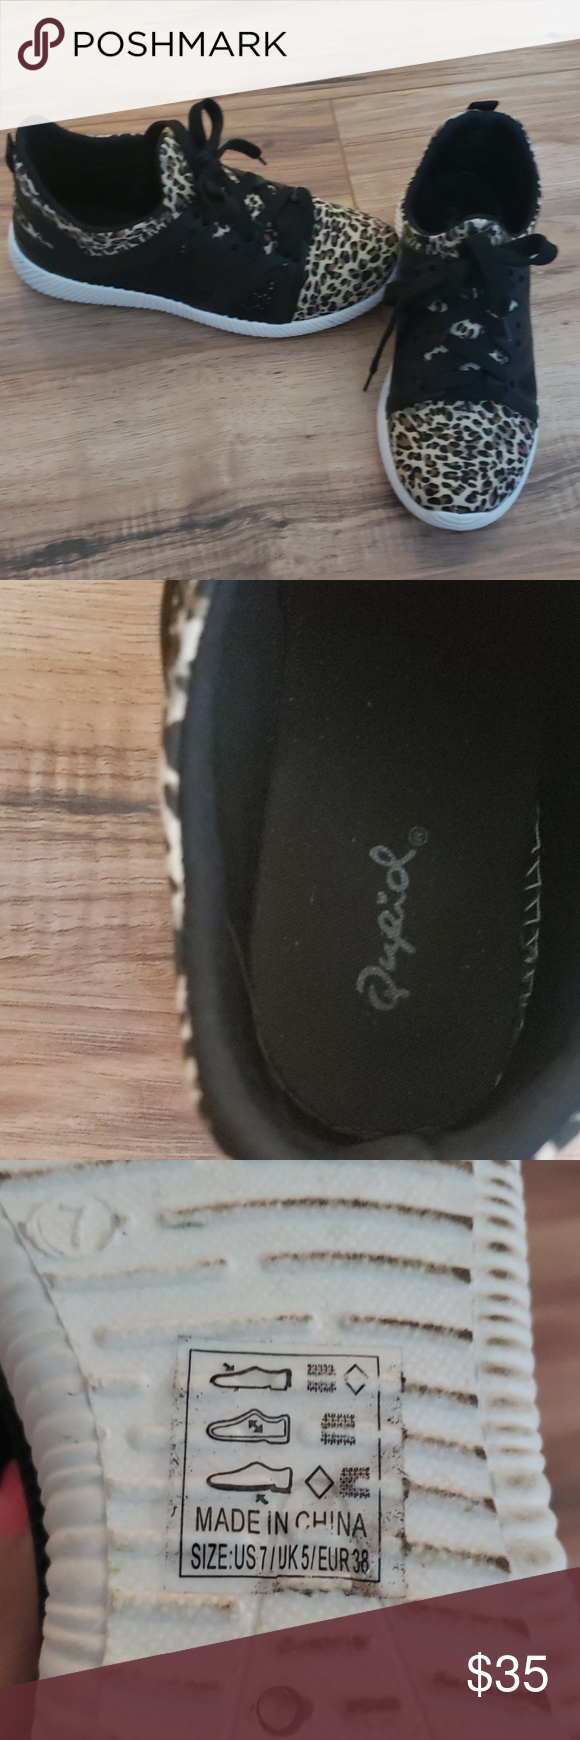 Qupid Boutique Brand Sneakers | Sneaker